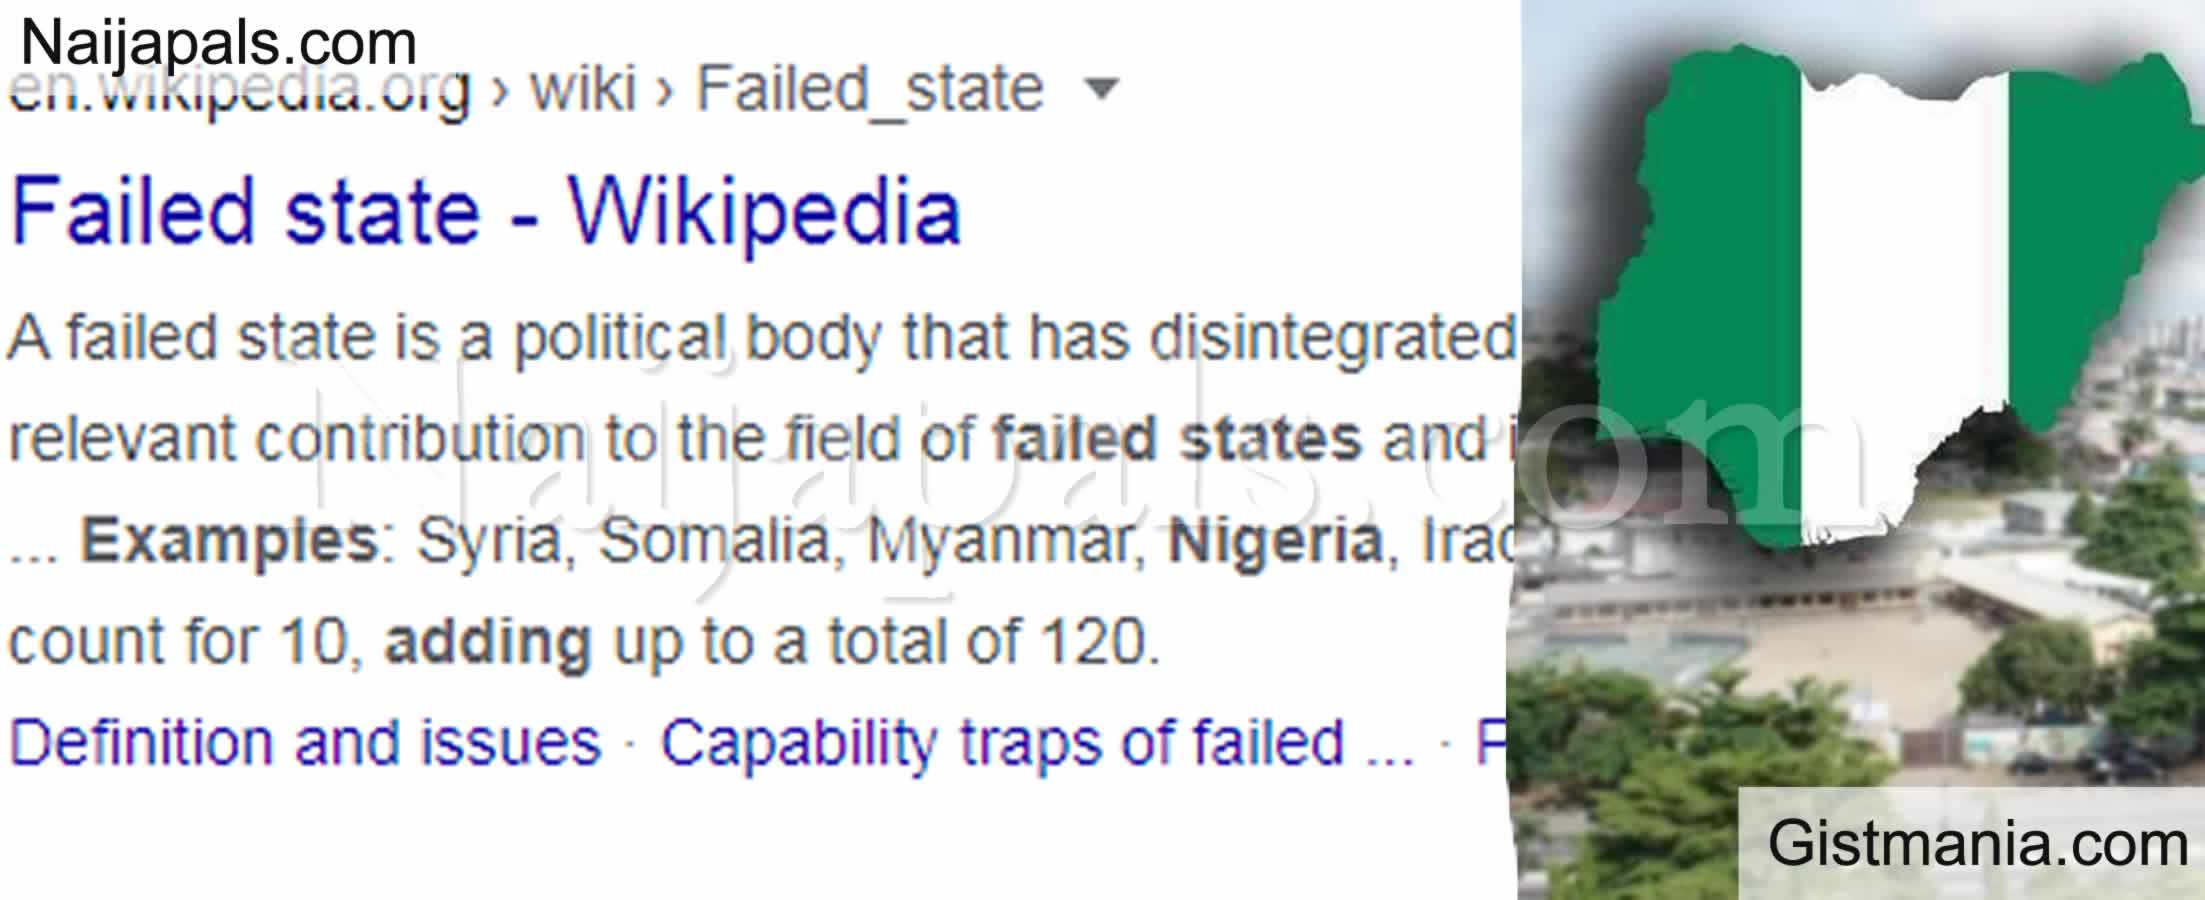 <img alt='.' class='lazyload' data-src='https://img.gistmania.com/emot/cry.gif' /> <b>Nigeria Included to List of 'Failed States' on Wikipedia</b>